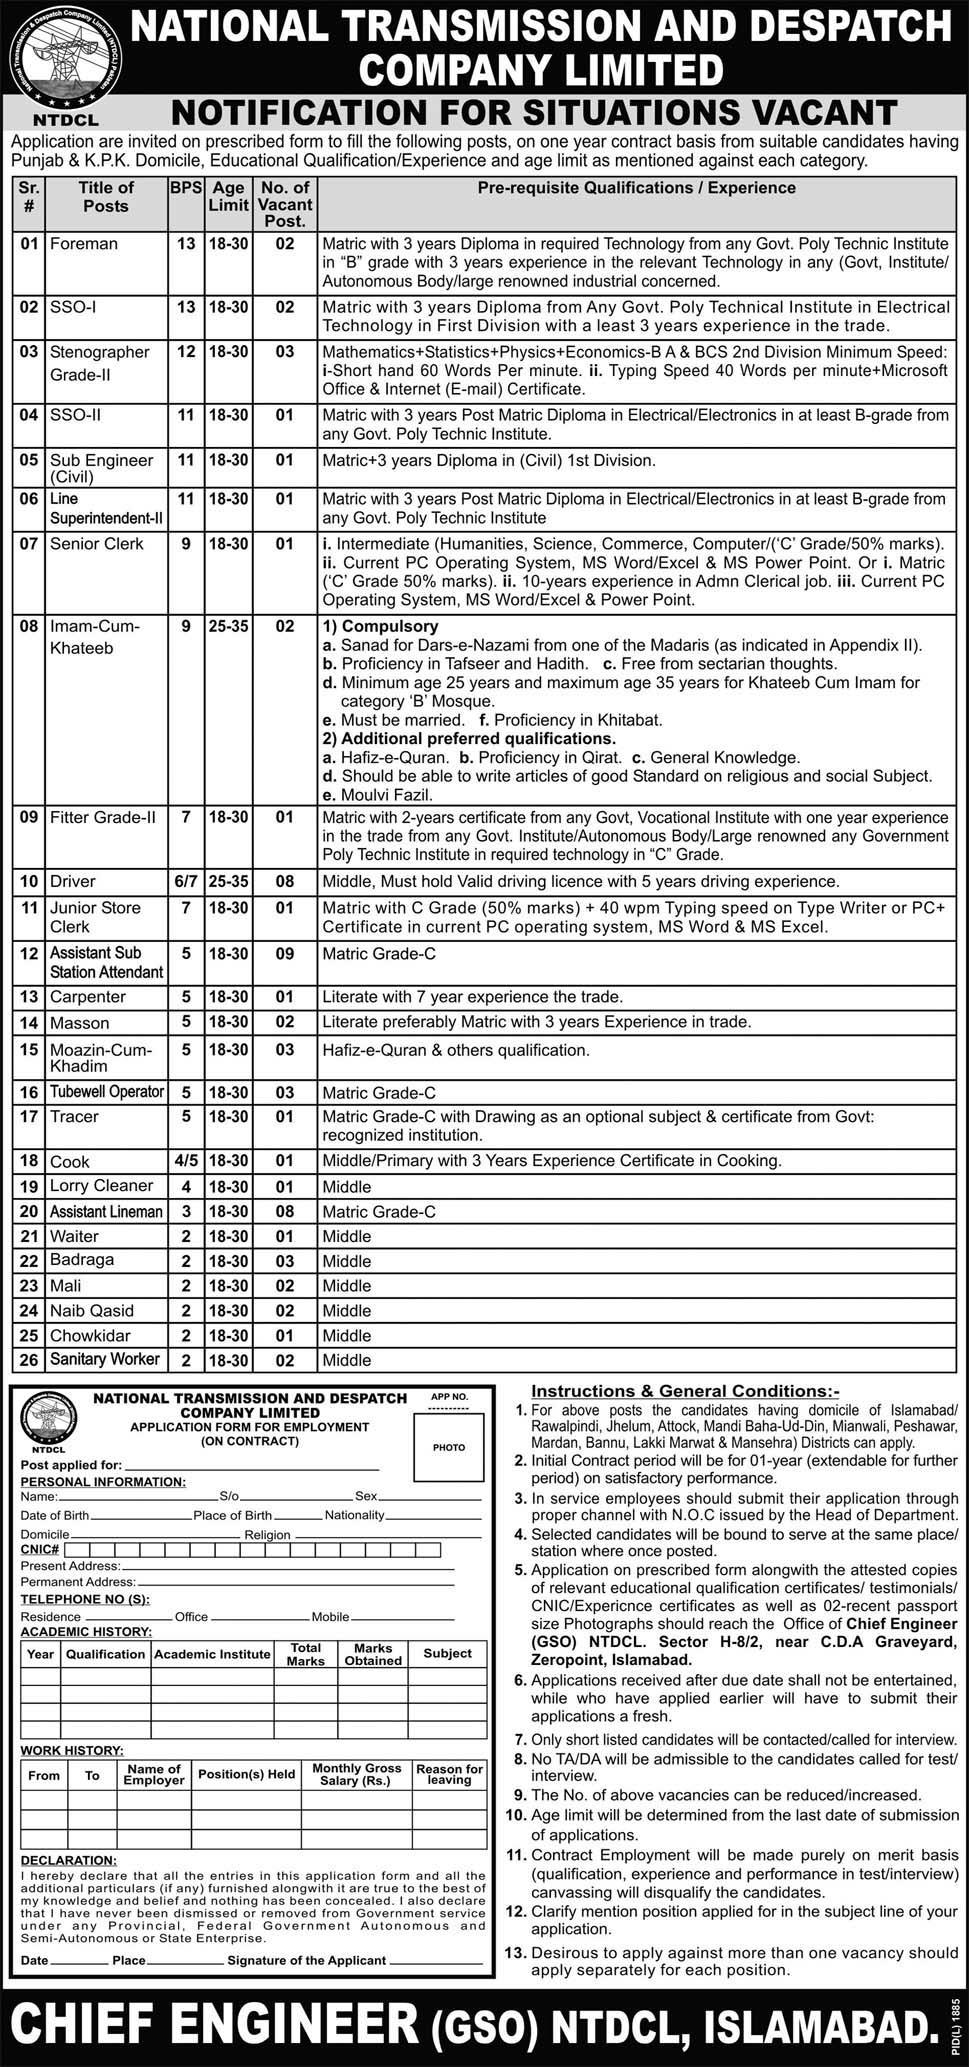 National Transmission and Dispatch Company Ltd Jobs Opportunity